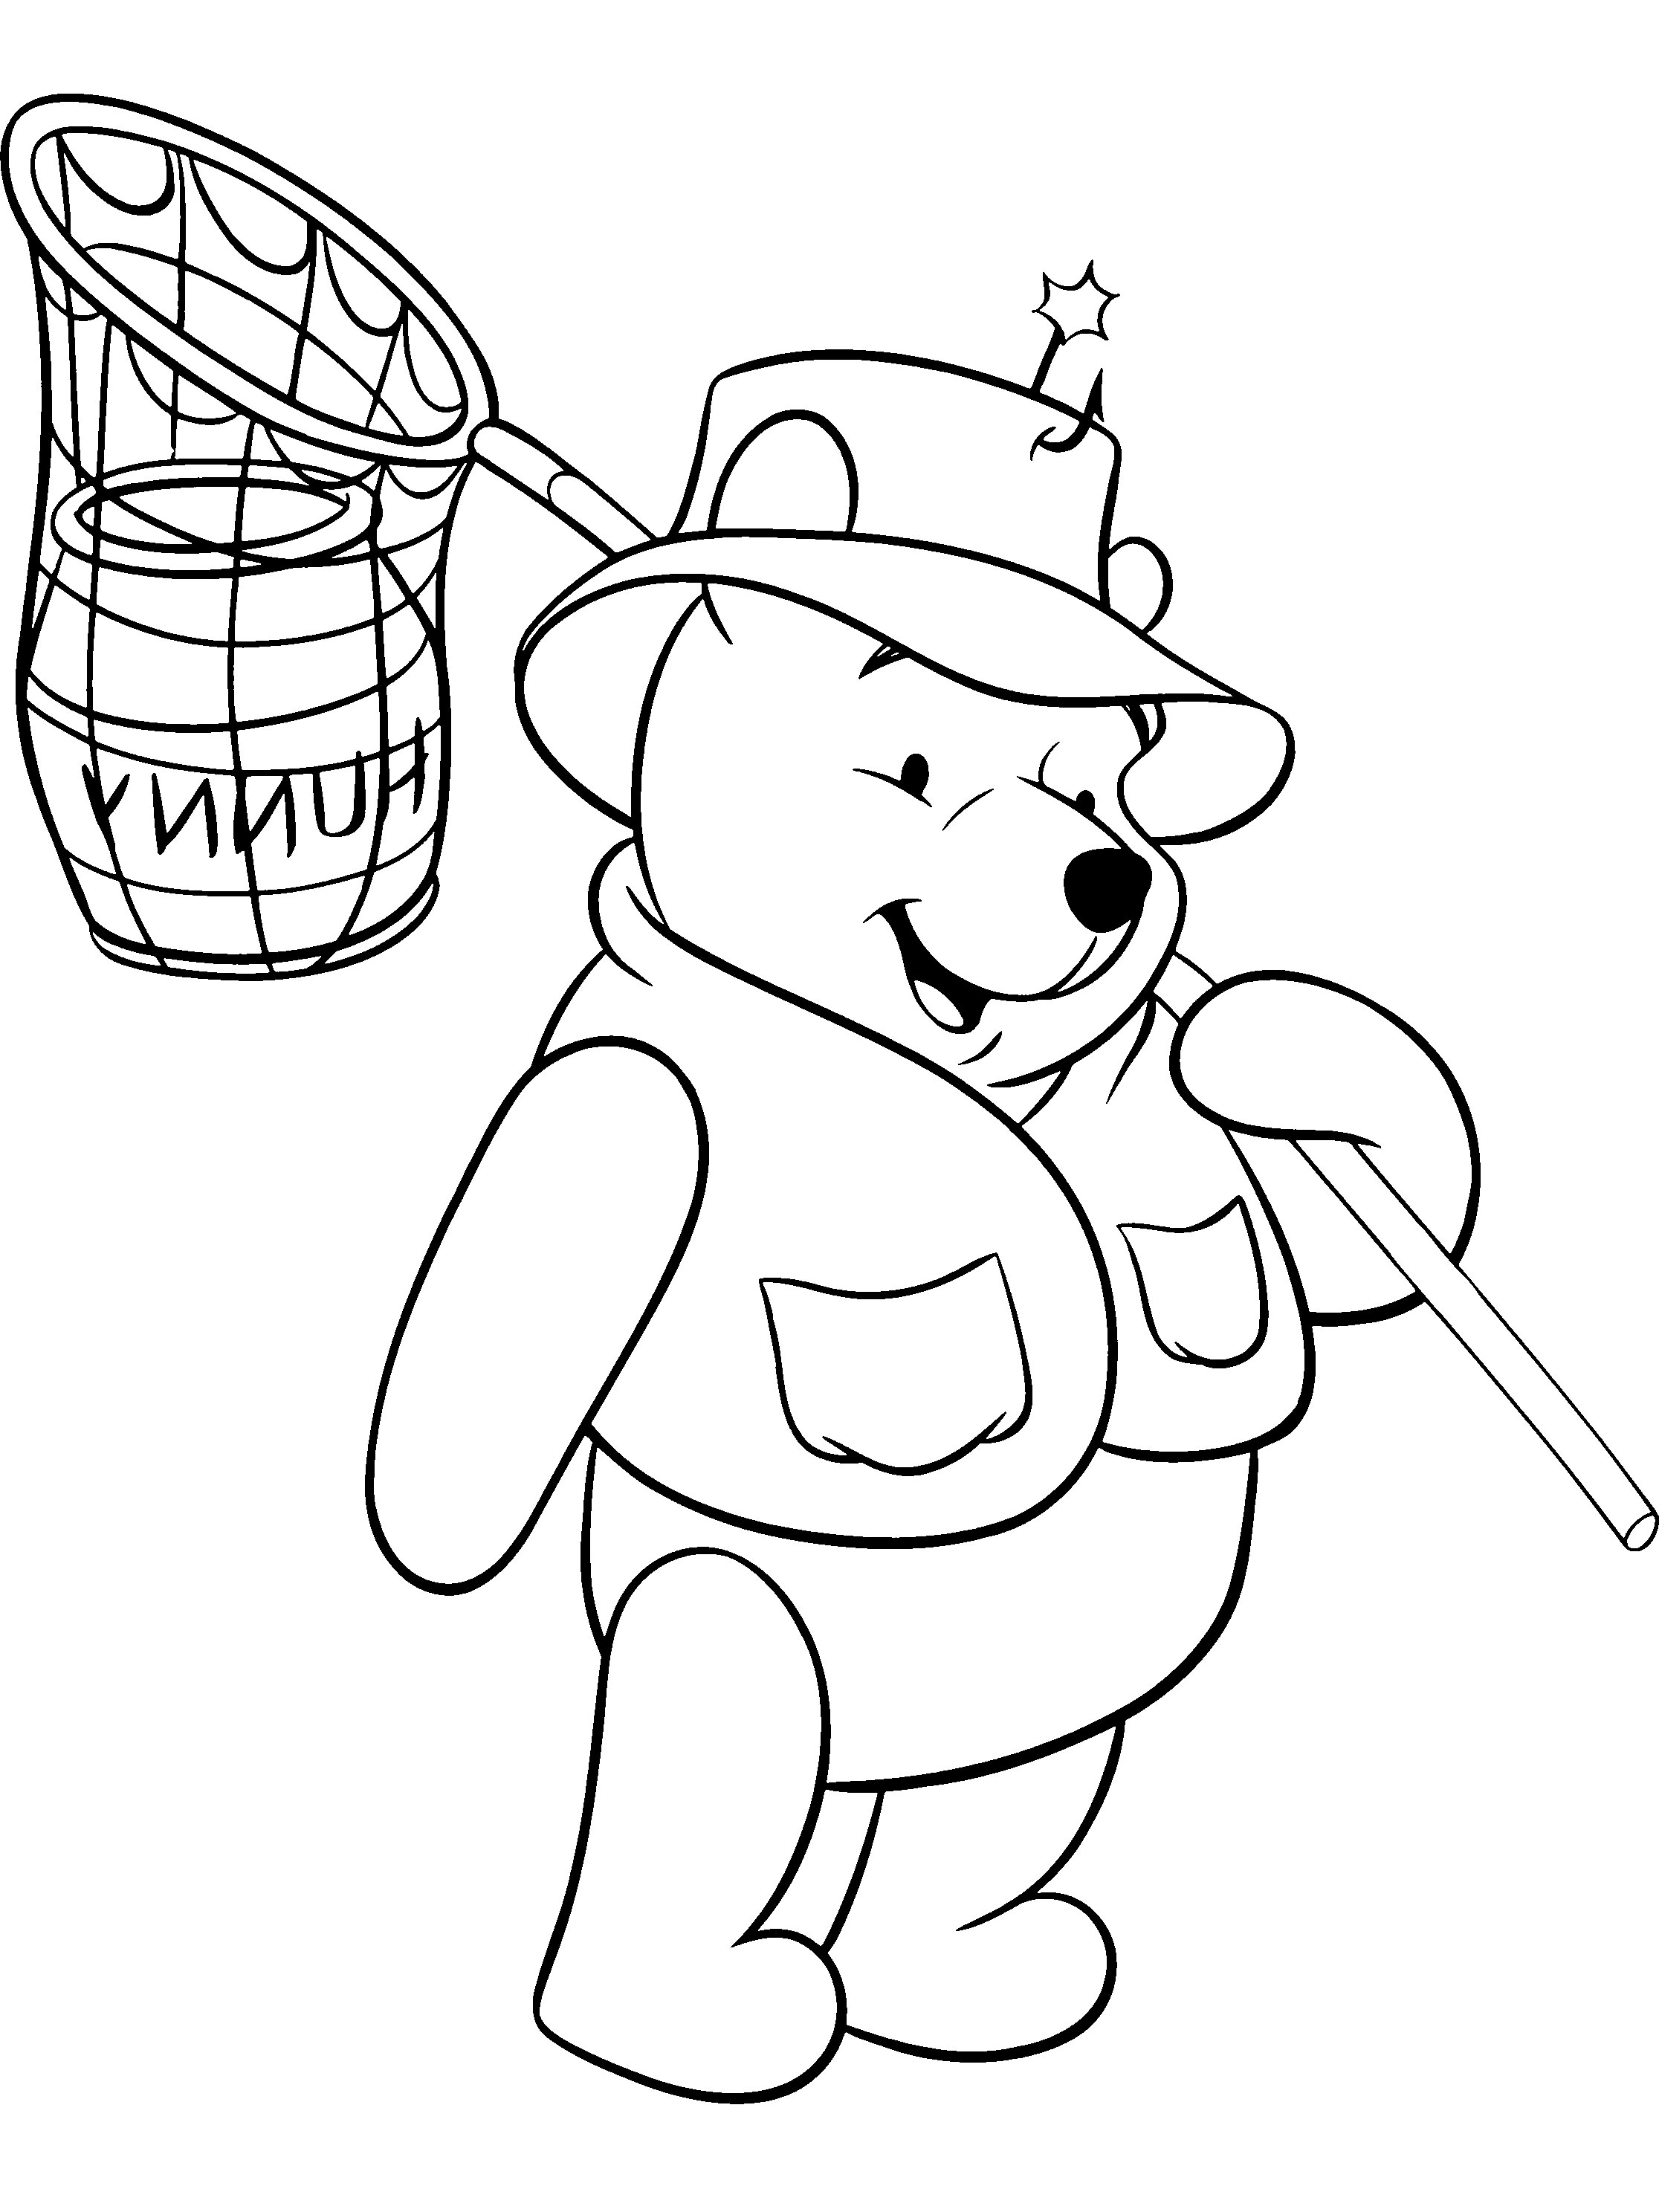 printable winnie the pooh coloring pages free printable winnie the pooh coloring pages for kids pooh winnie the pages coloring printable